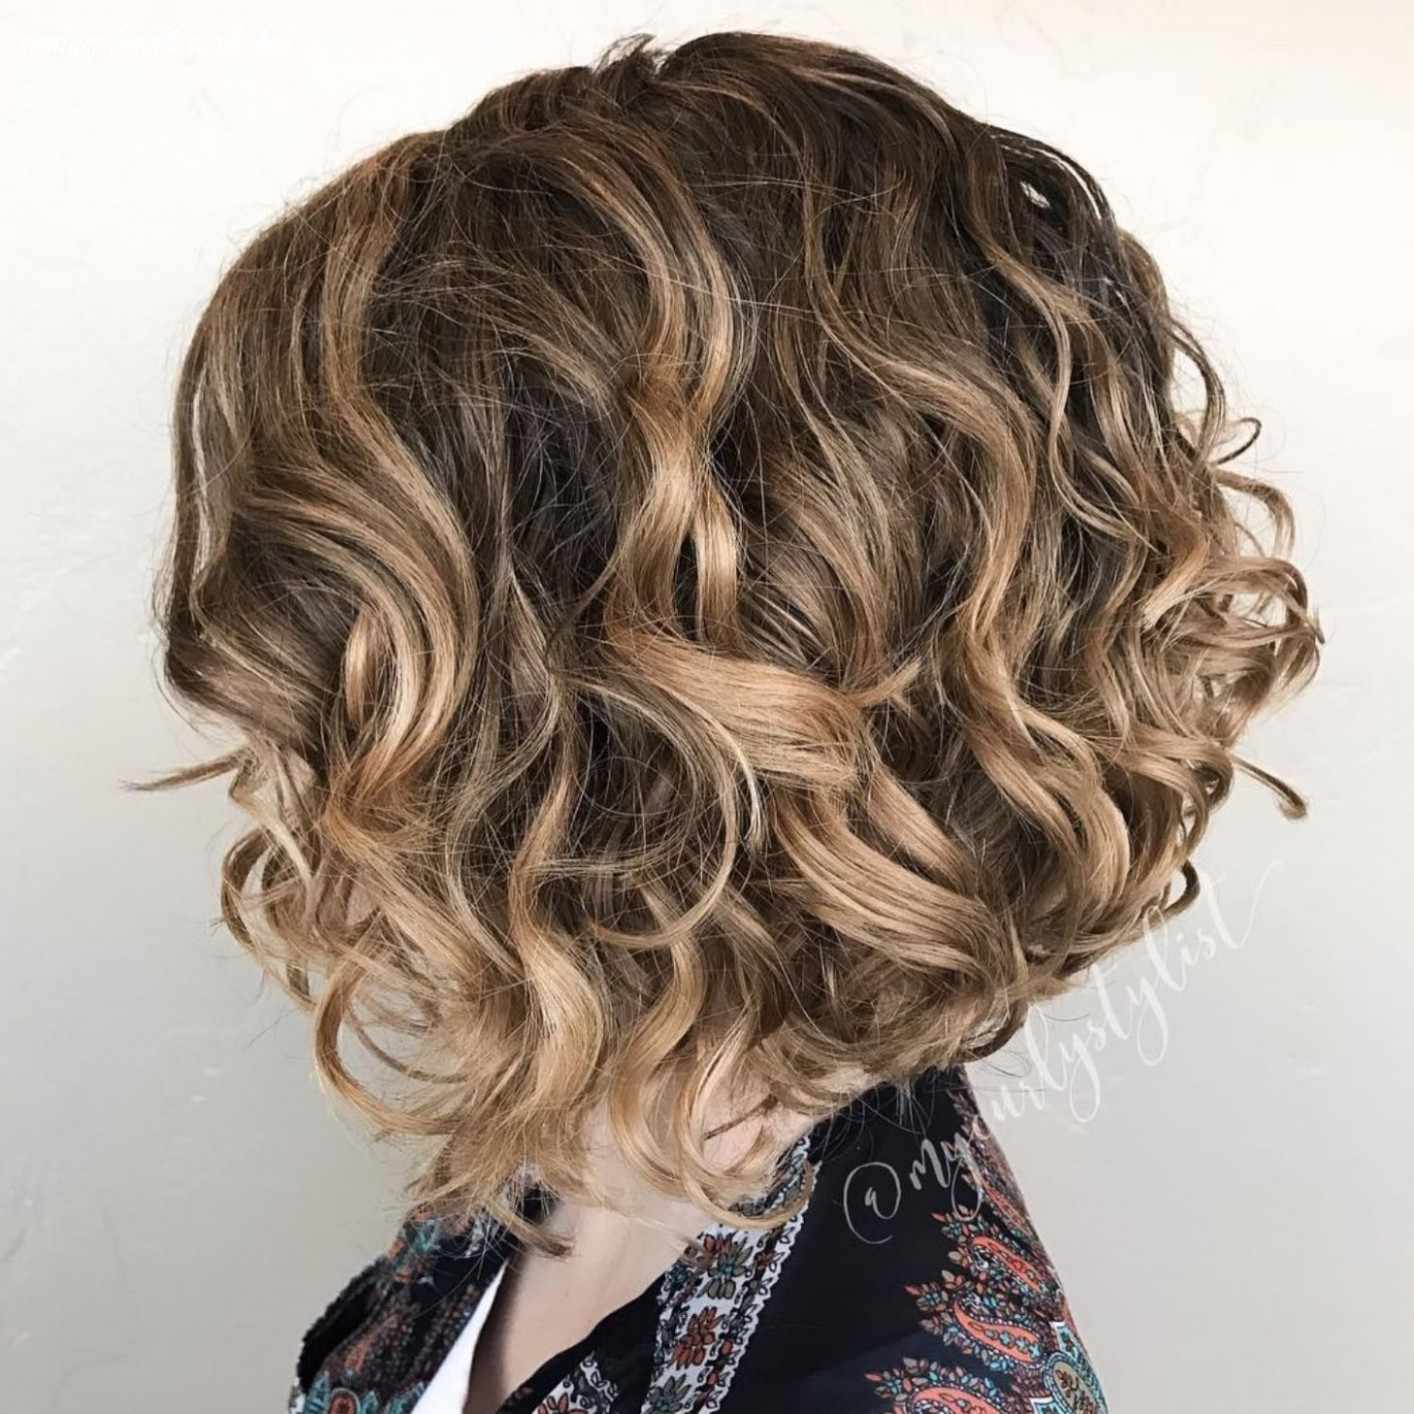 10 Different Versions of Curly Bob Hairstyle in 10   Curly bob ...